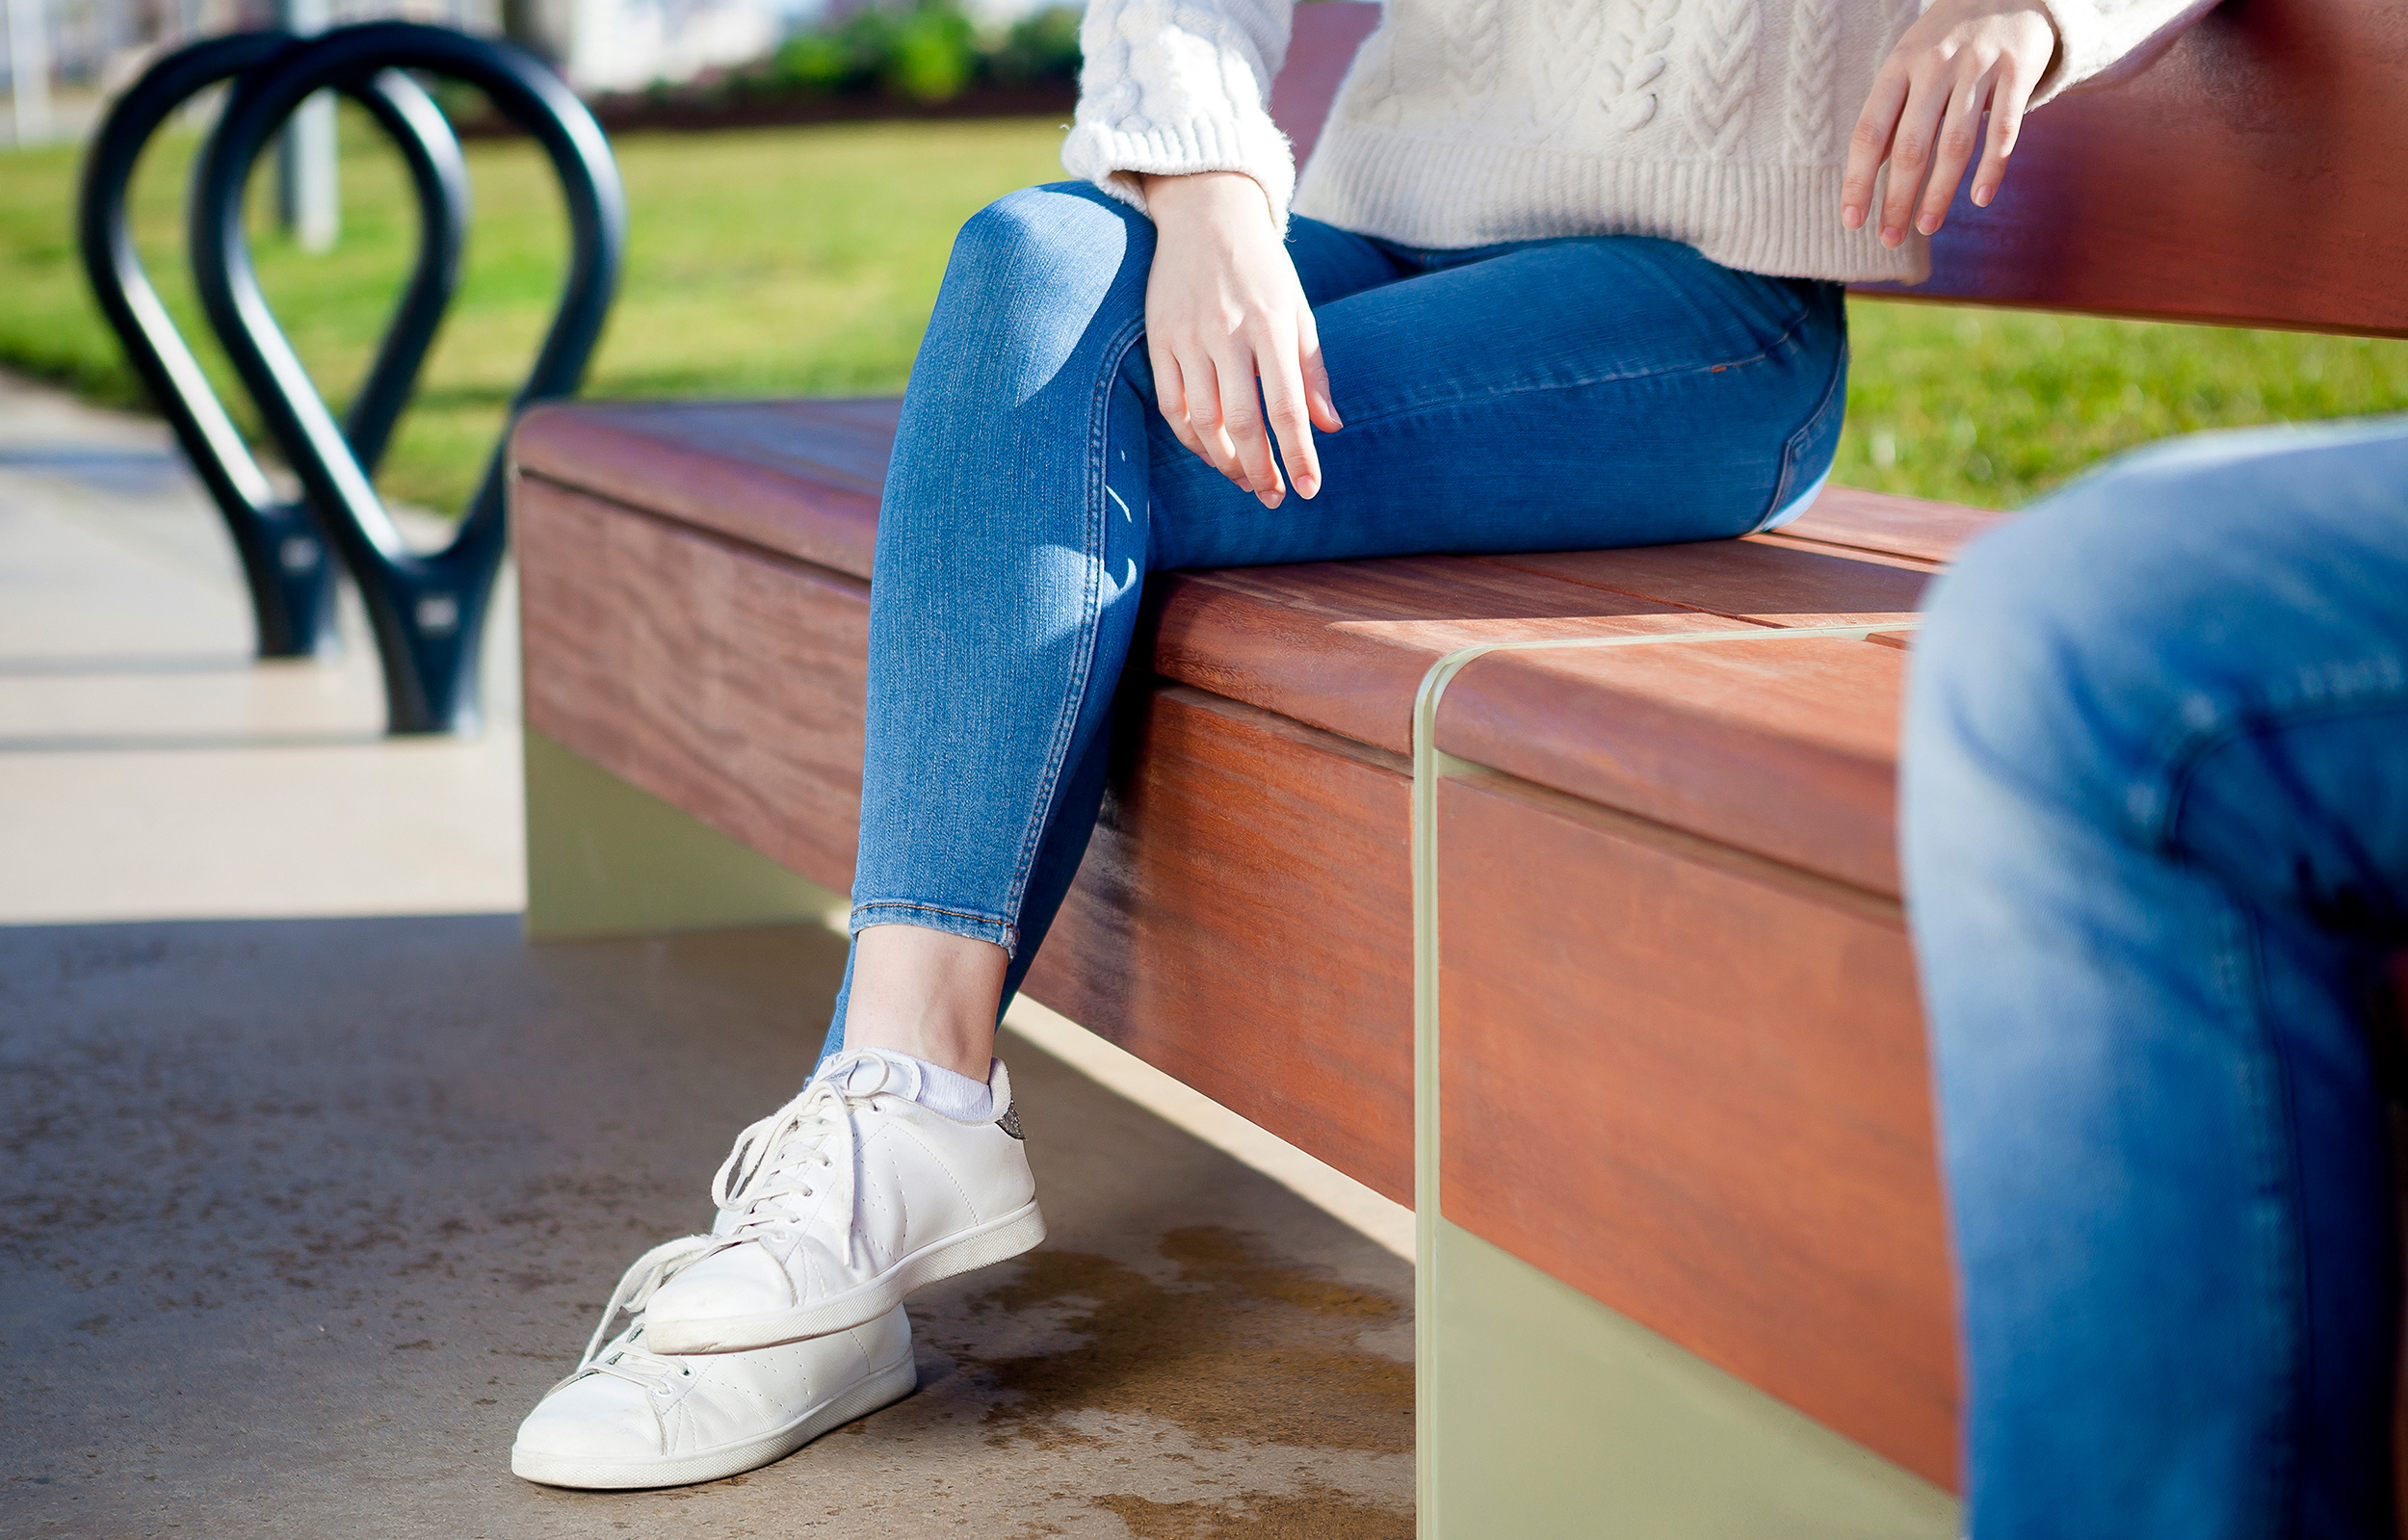 Bru bench. a wooden bench for parks and hospitalities